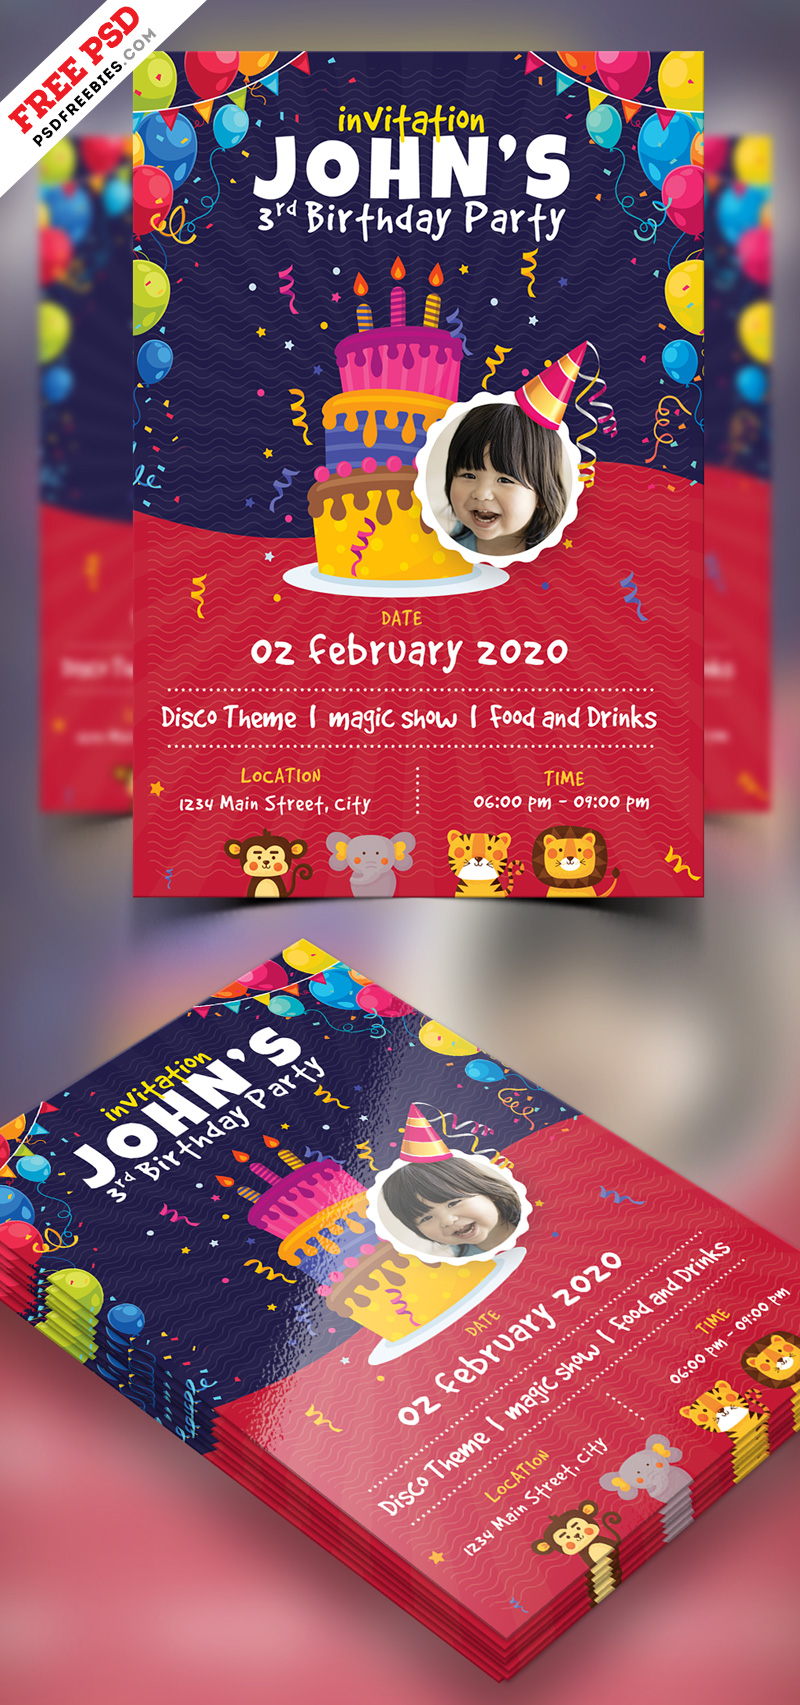 kids birthday party invitation flyer psd psdfreebies com